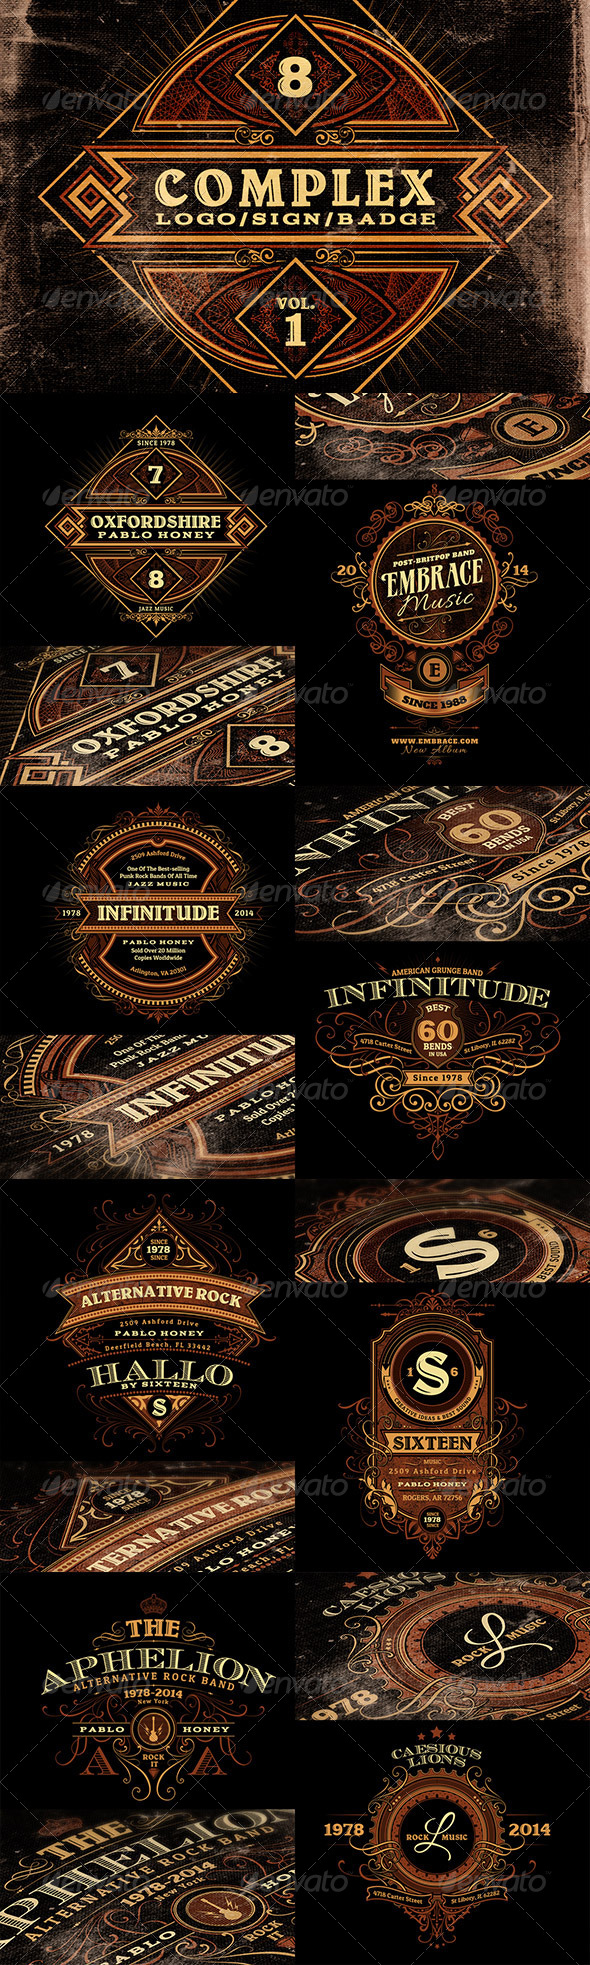 GraphicRiver Complex Logos Signs Badges v.1 6724282